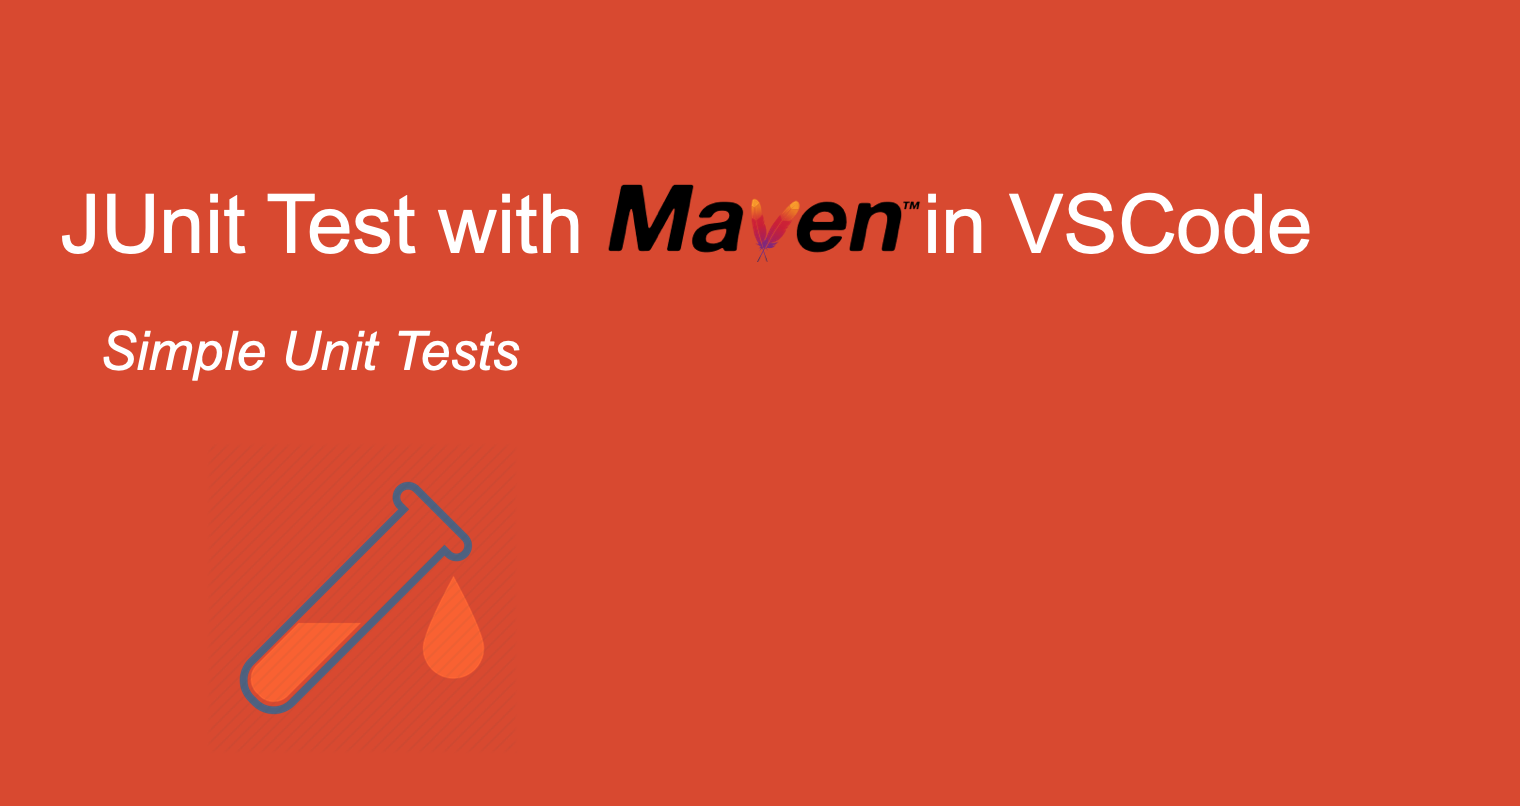 JUnit Test with Maven in VSCode